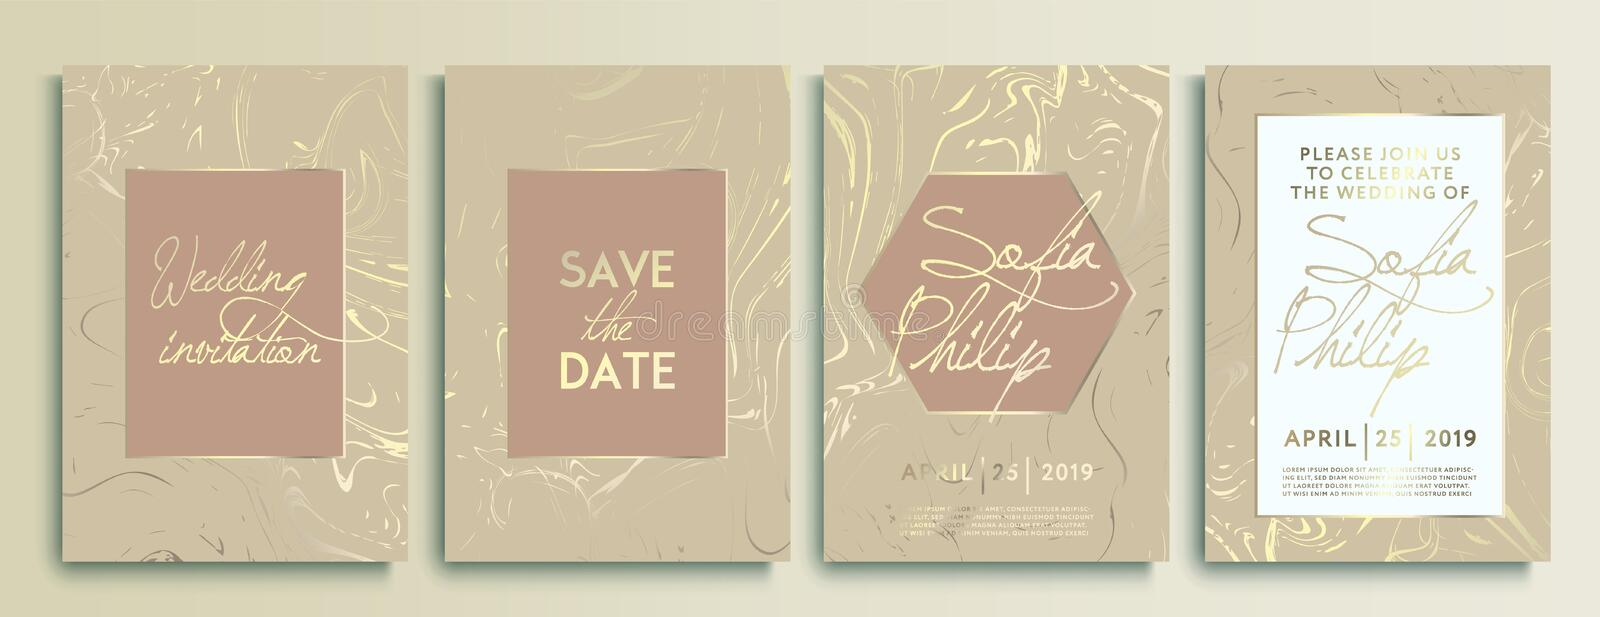 Wedding invitation cards with marble texture background and gold geometric line design vector. Wedding invitation frame set vector illustration